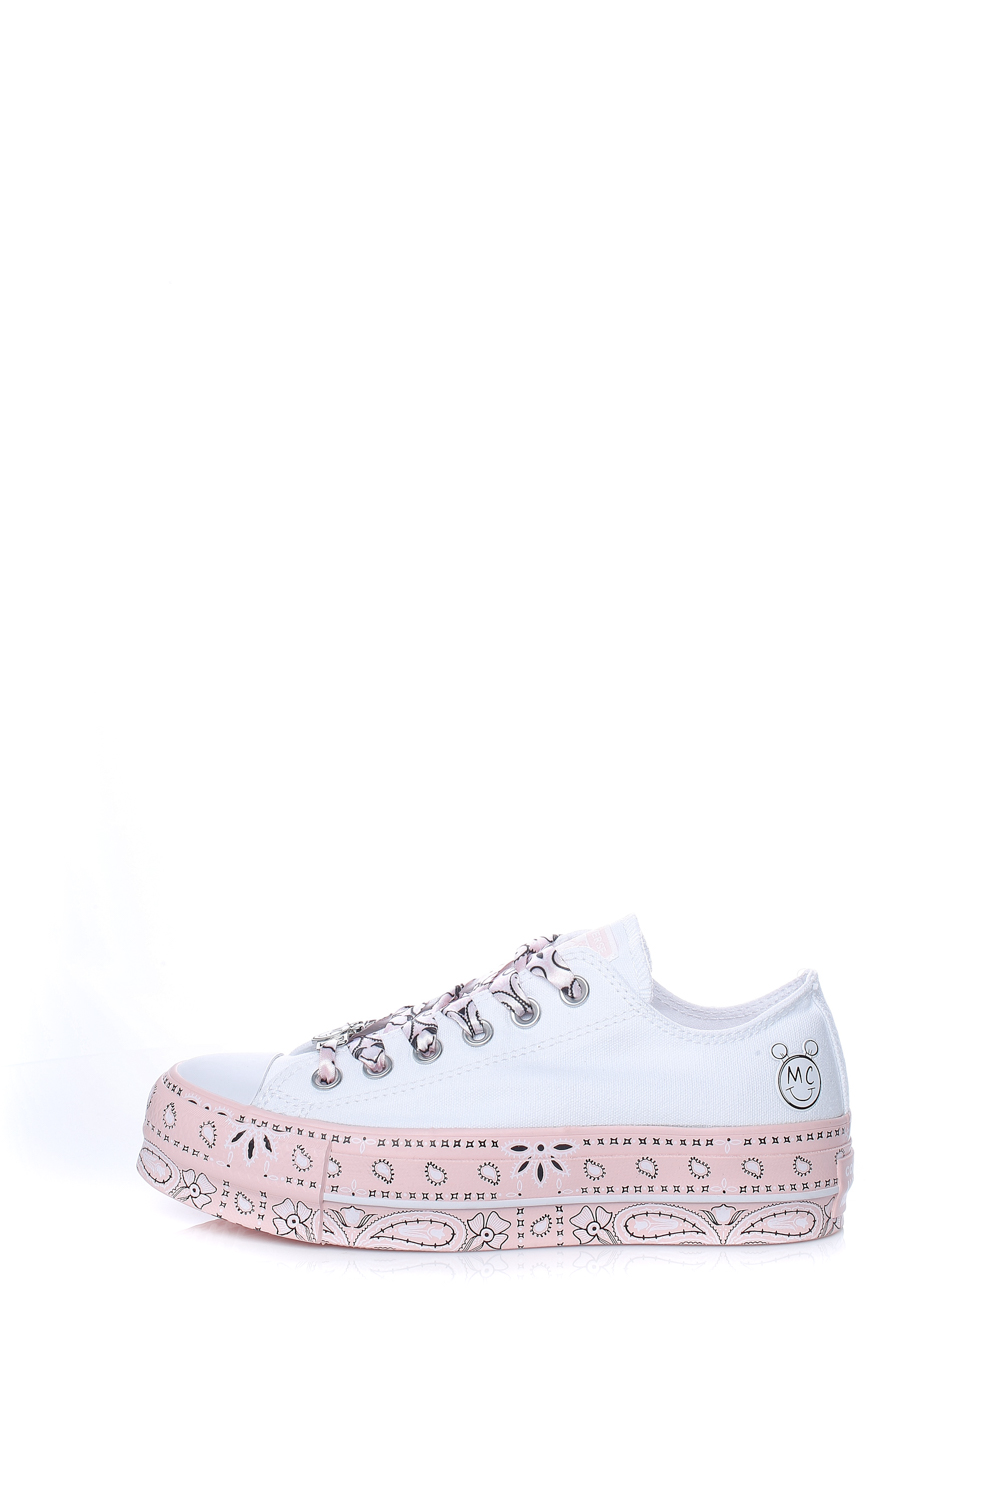 dcdfd74288c Παπούτσια All Star Converse - ΣΤΑΡΑΚΙΑ